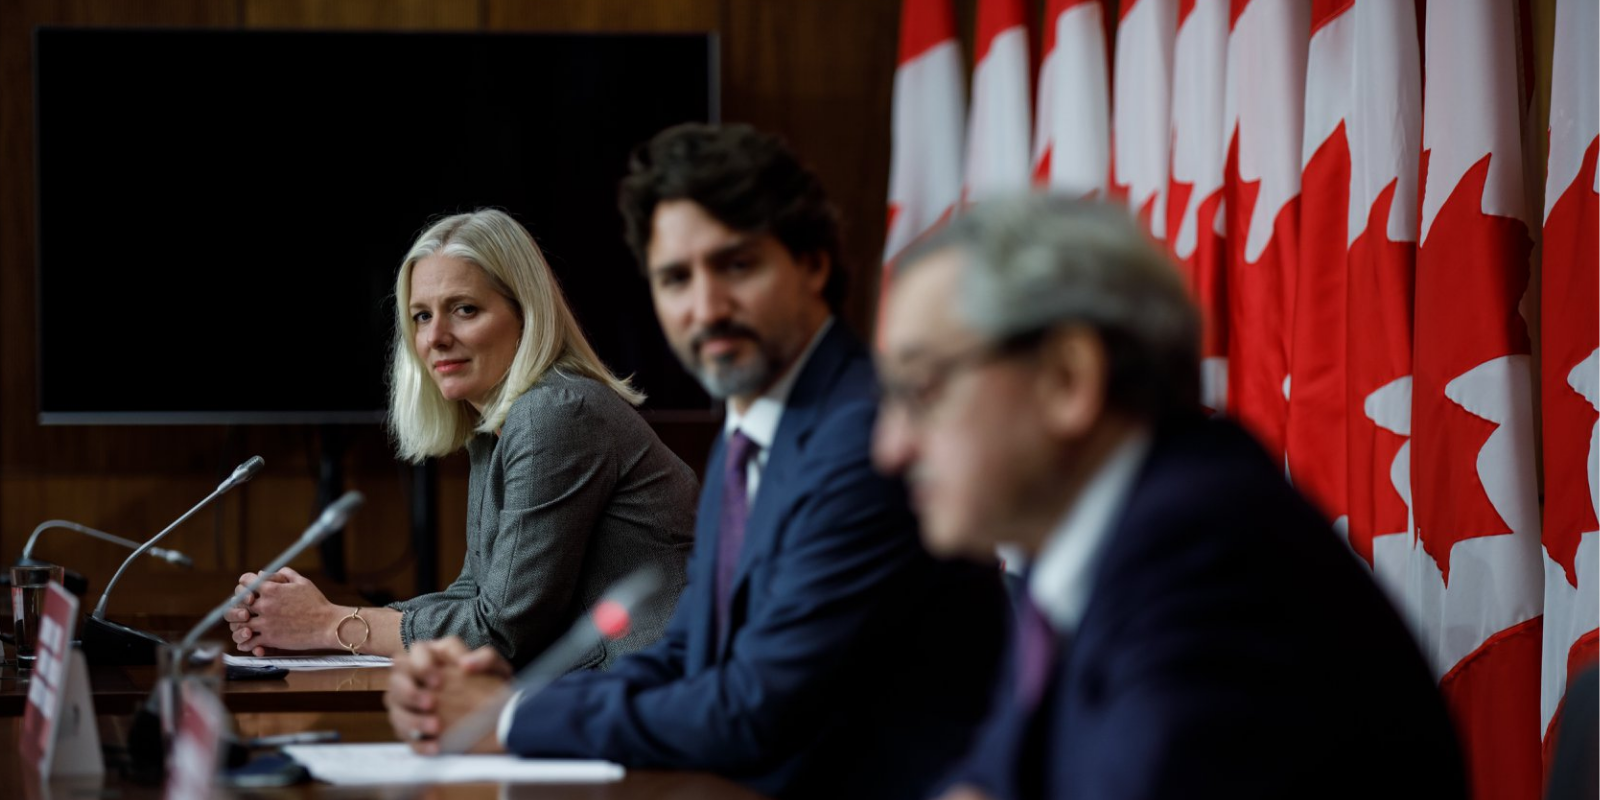 Shady Infrastructure Bank is Trudeau Liberals' next big scandal waiting to happen